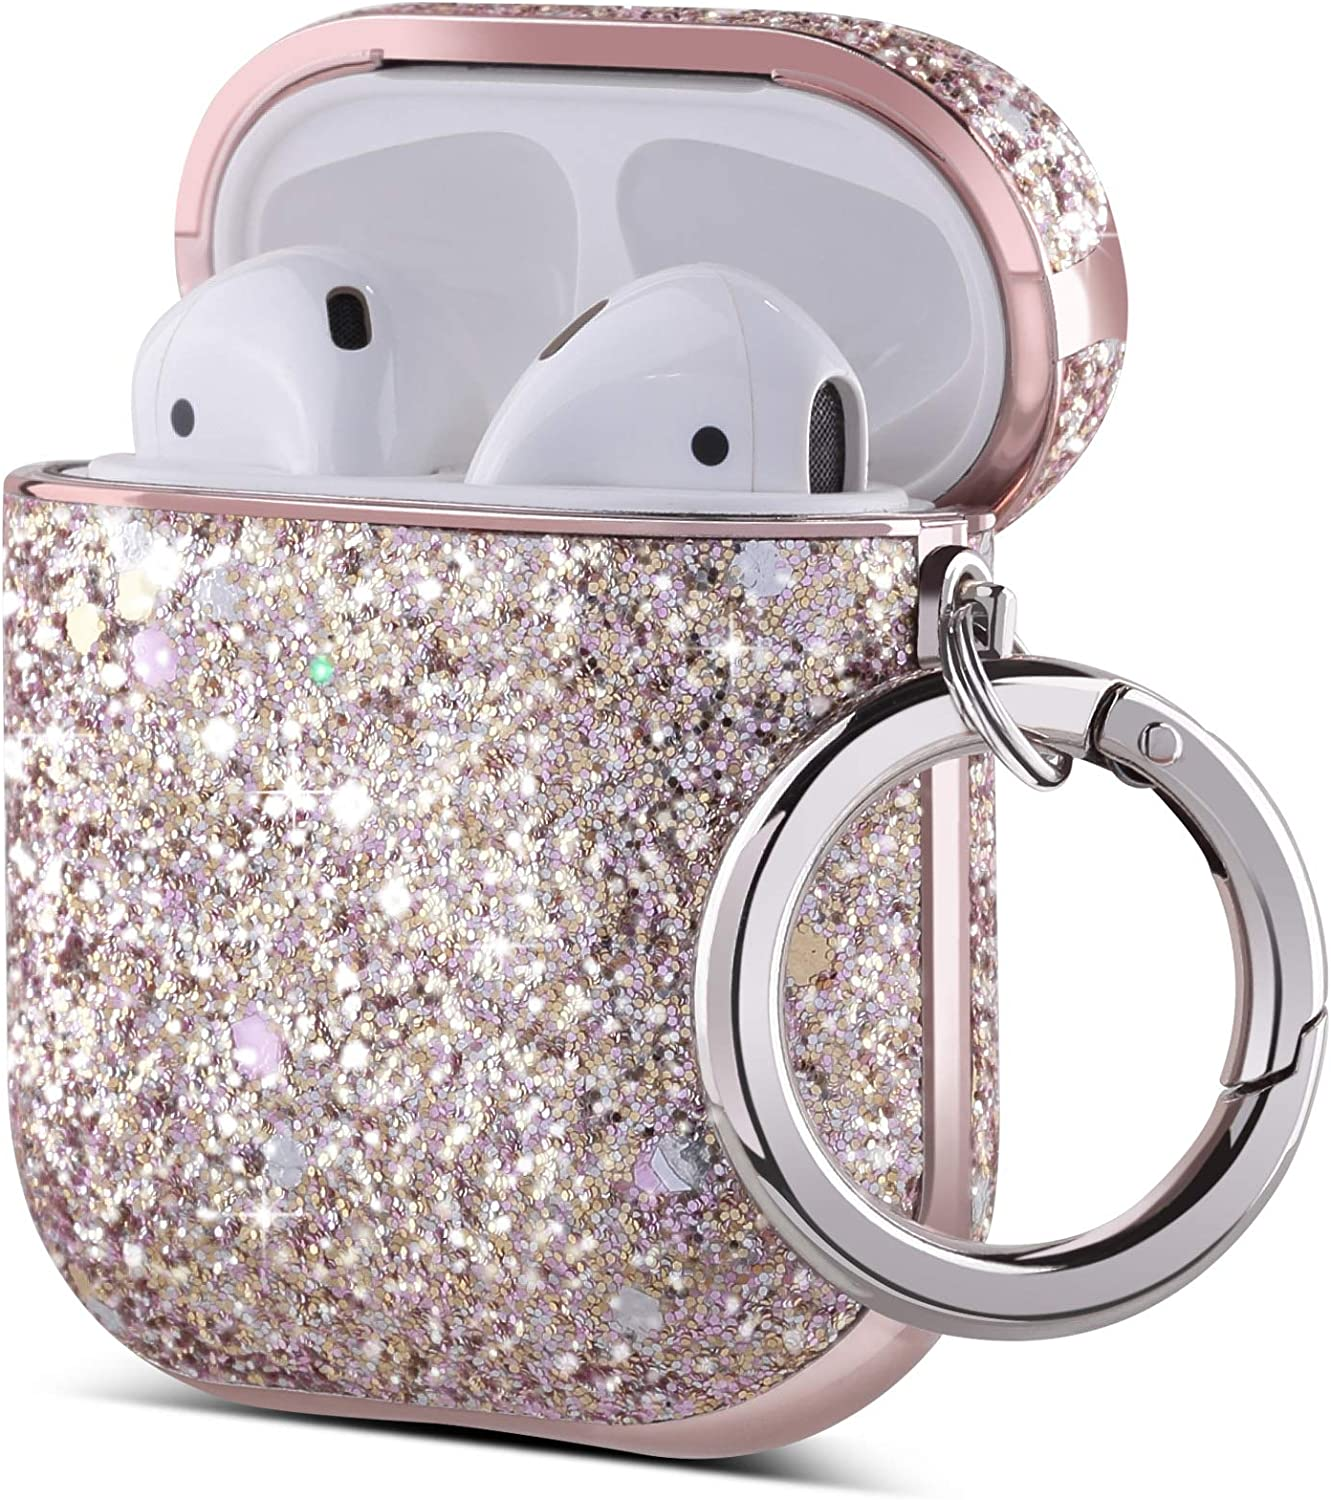 ULAK AirPods Case, Luxury Glitter Leather with Mirror Surface Plating Hard Cover,Shockproof Protective AirPod Accessories with Keychain for Apple AirPod Charging Case 2 & 1(LED Visible)(Pink Glitter)